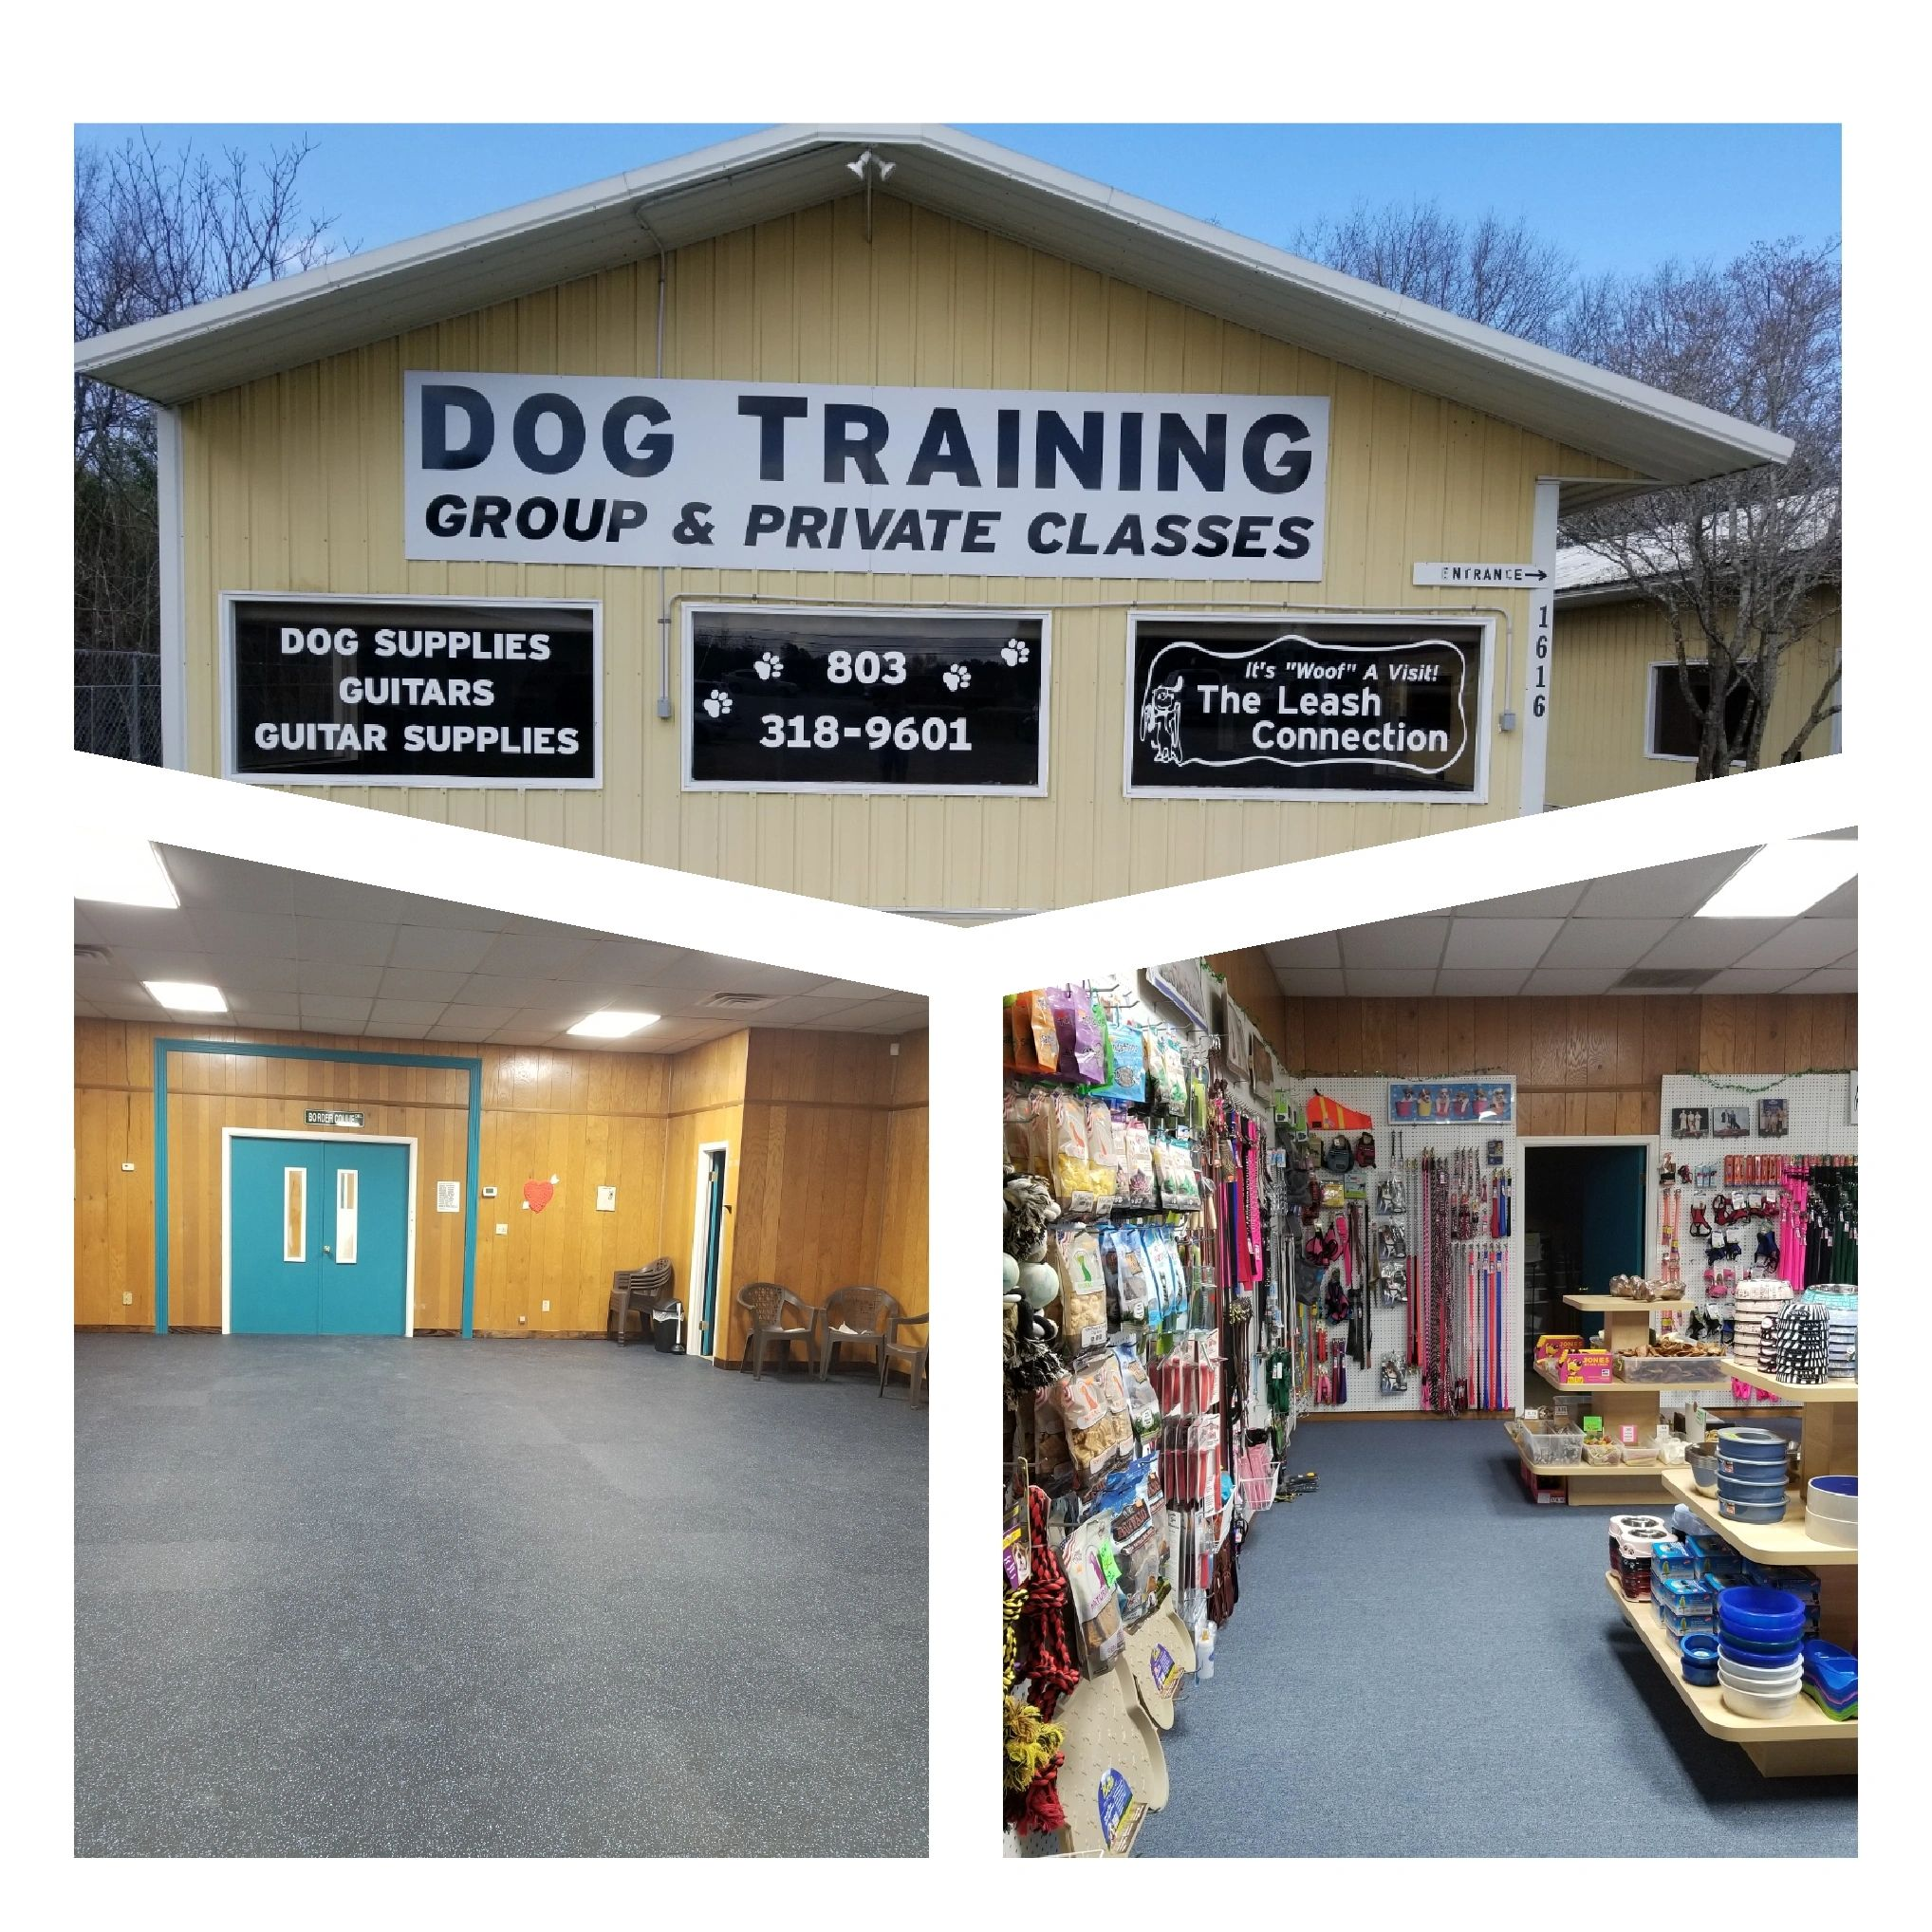 The Leash Connection - Dog Training, Dog Supplies